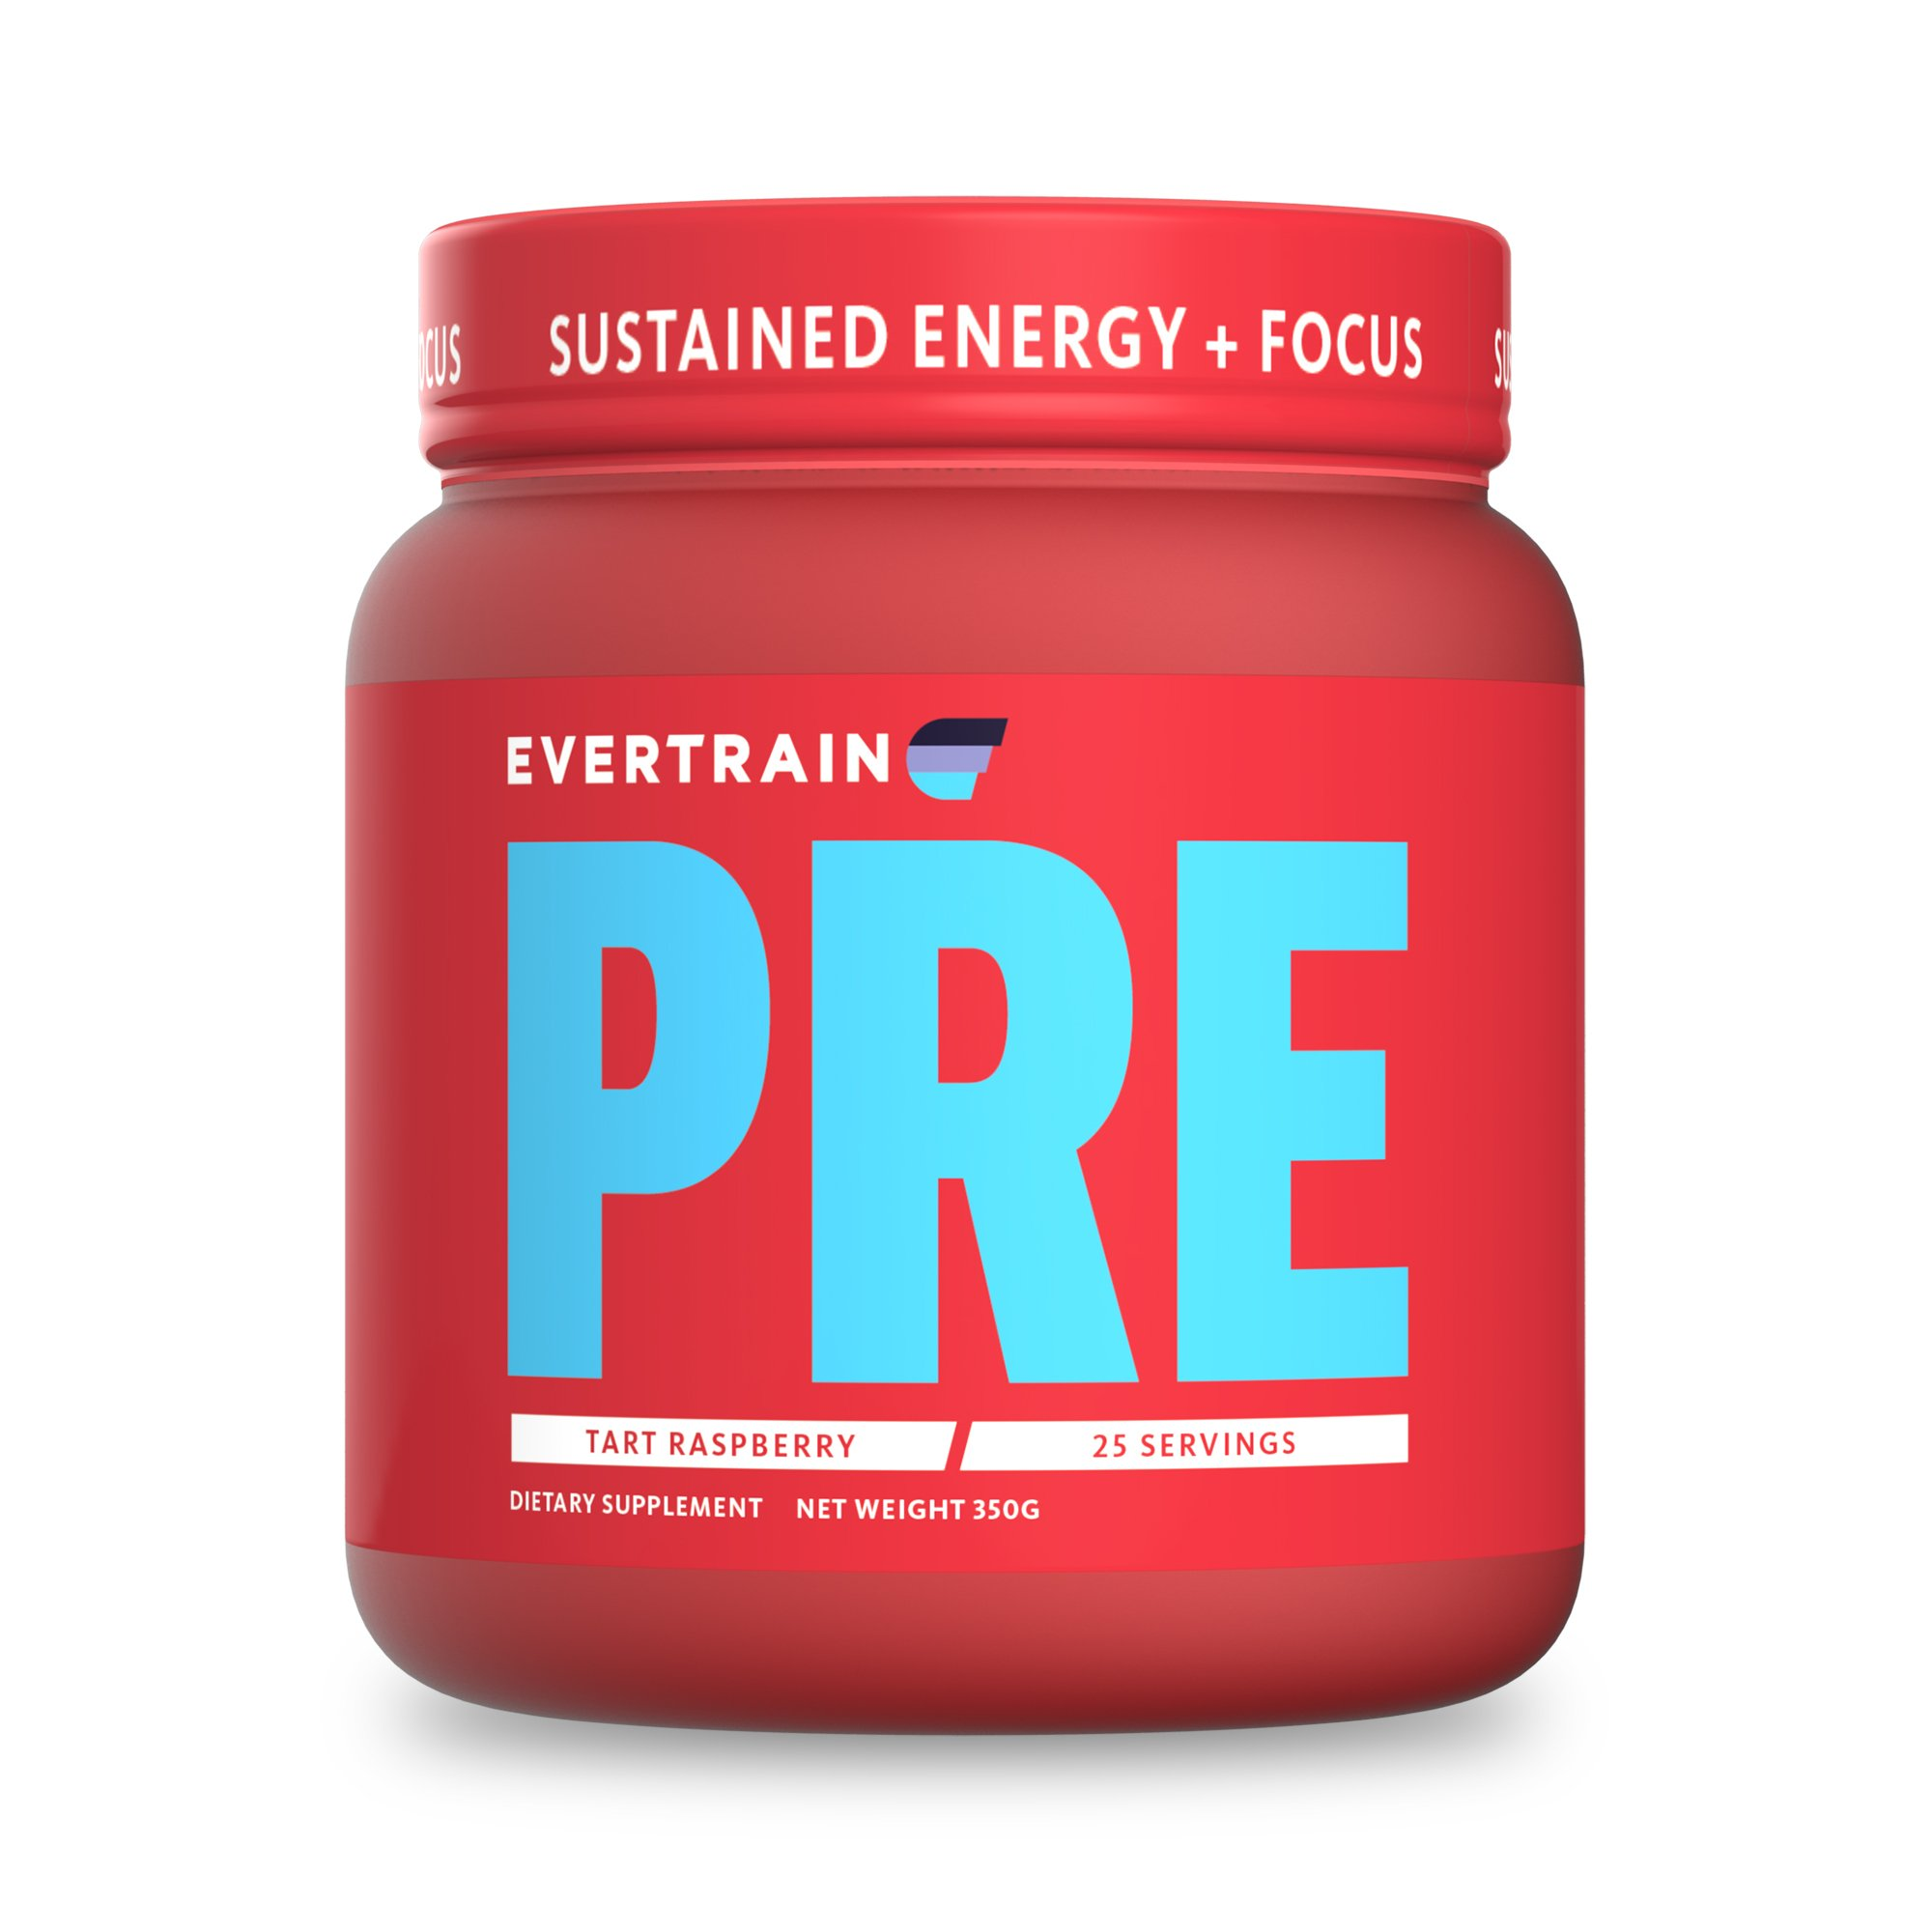 EVERTRAIN PRE - Premium Clean Pre Workout Powder With Natural Flavors and Colors - Strength, Energy, Focus, and Muscle Building Supplement - Tart Raspberry - 25 Servings